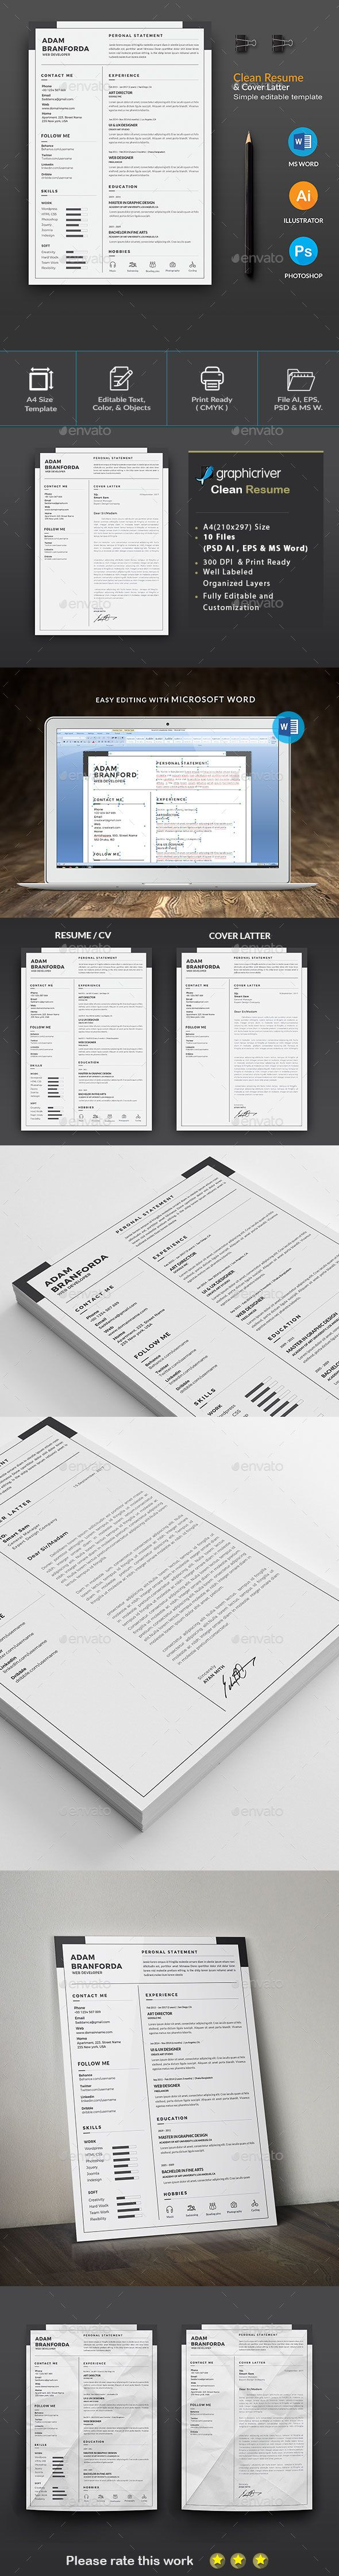 Clean Resume Download%0A  Resume   Cv  Resumes Stationery Download here  https   graphicriver